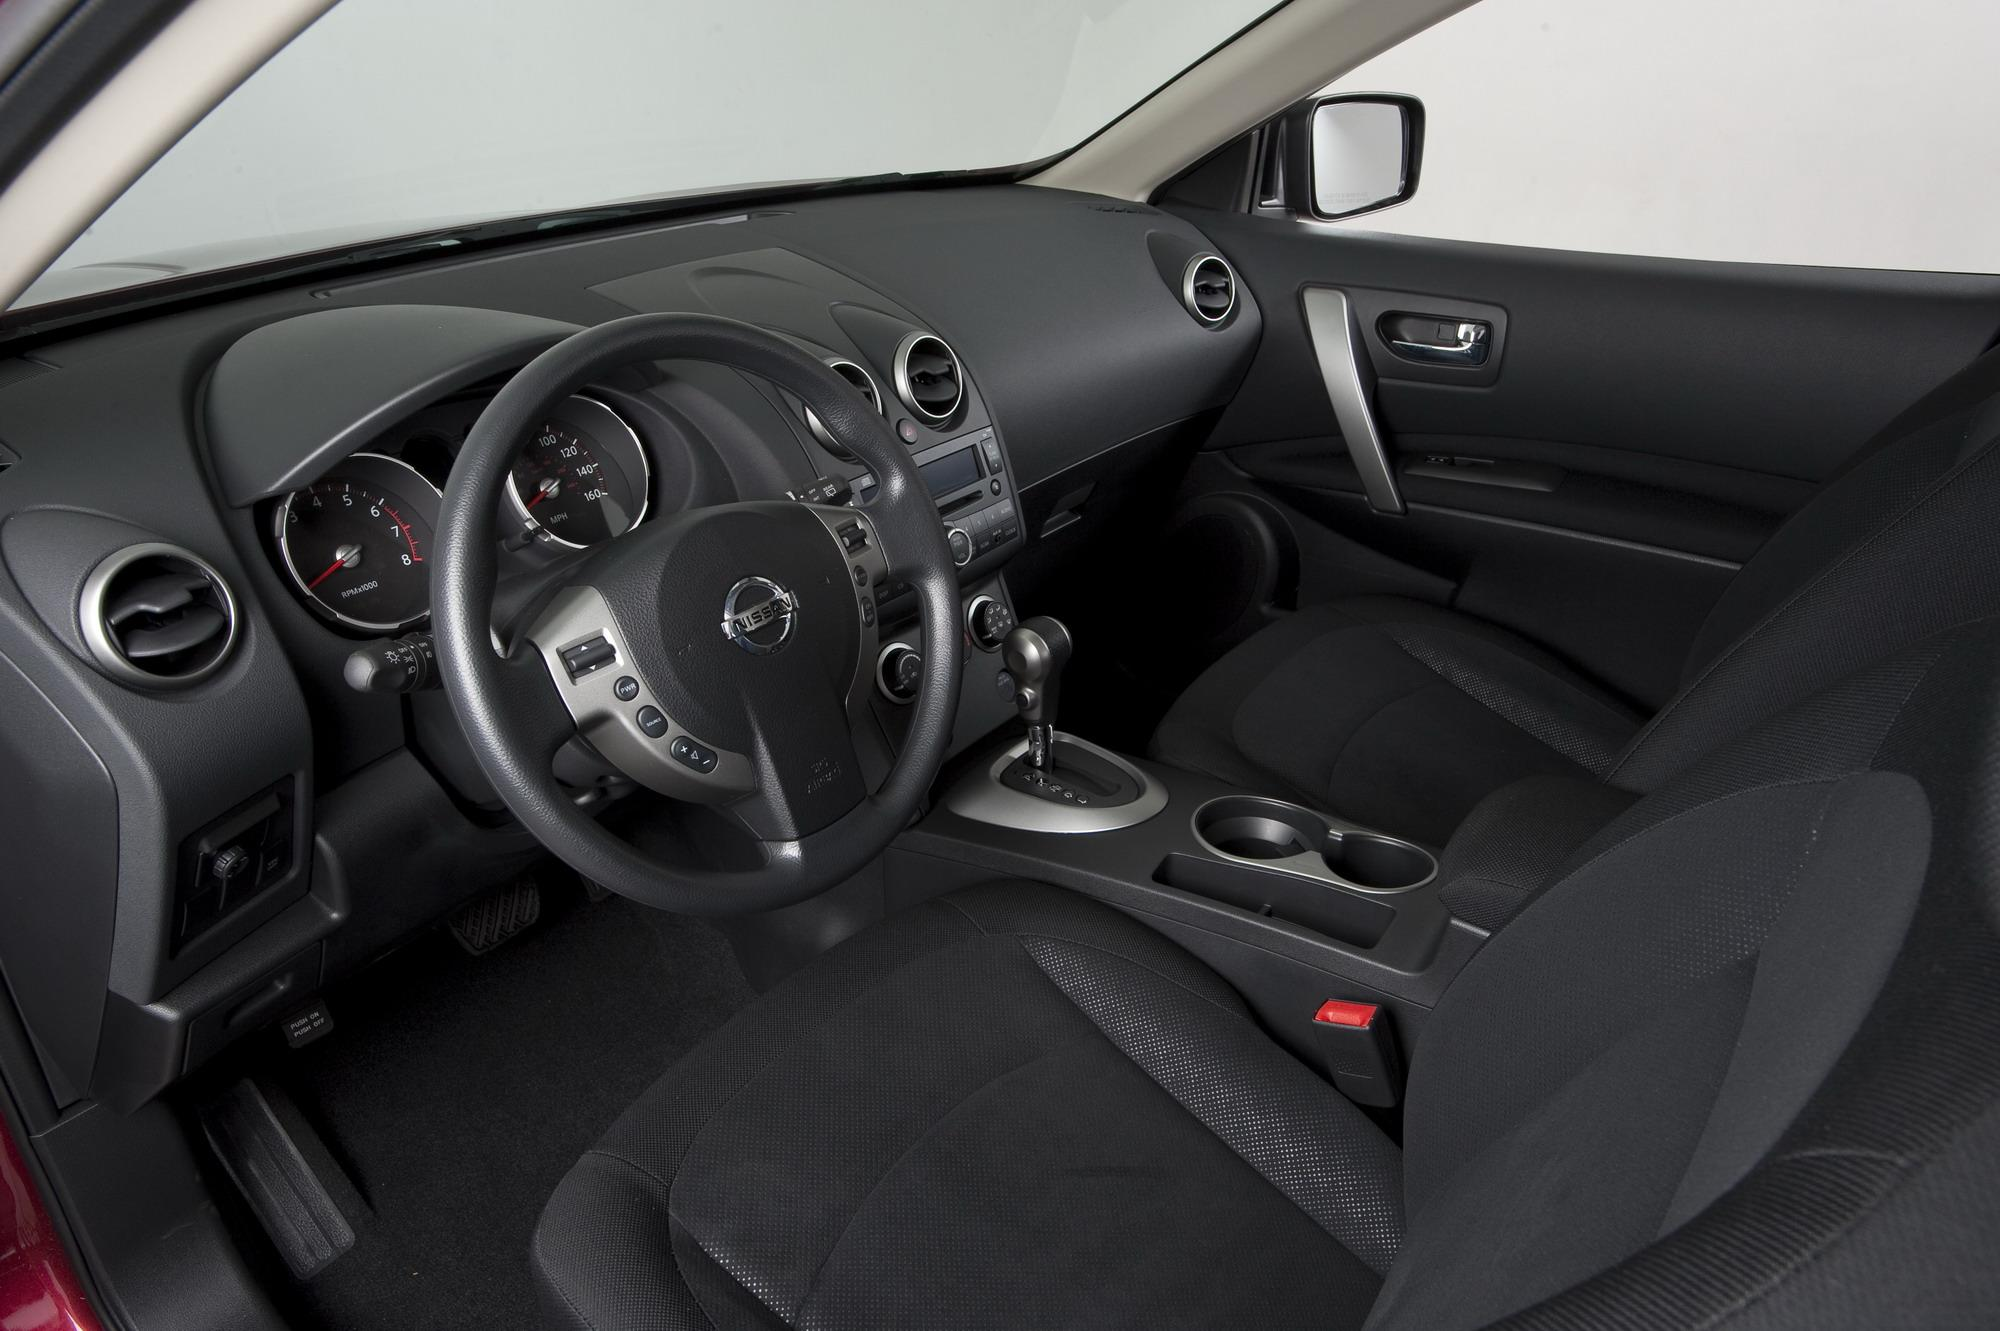 2010 nissan rogue krom edition review - top speed